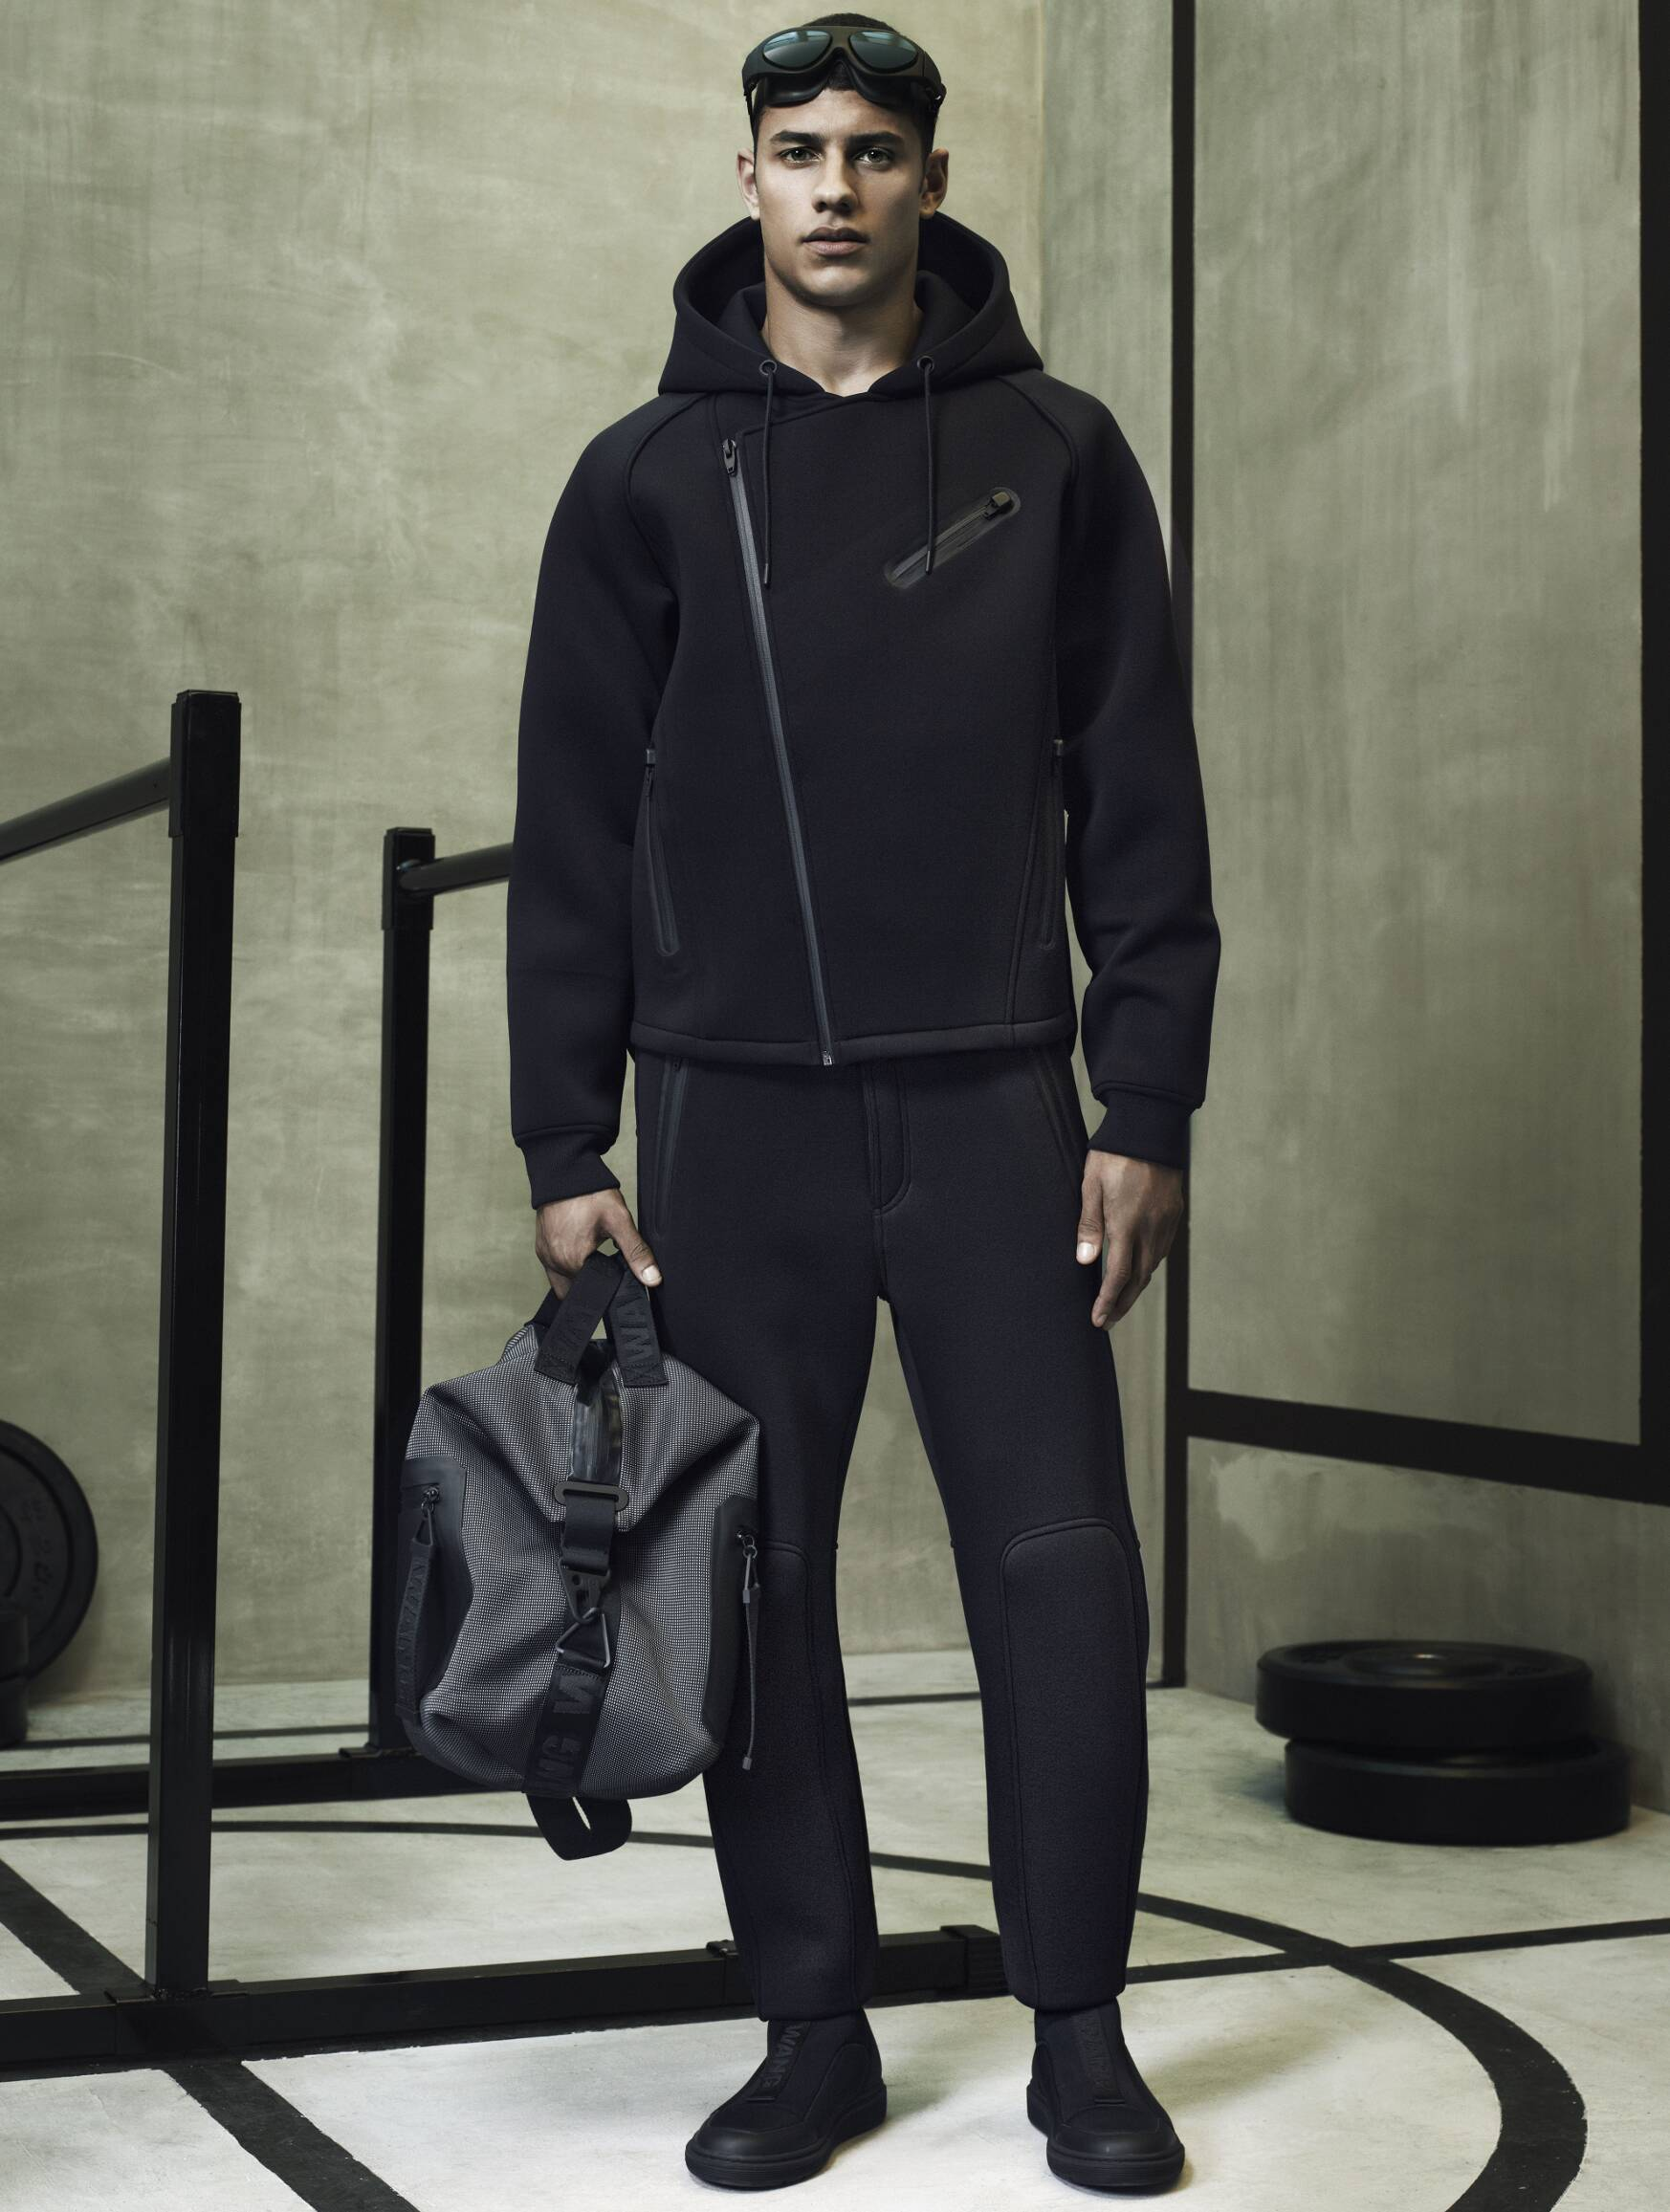 Alexander Wang for H&M Man 2015